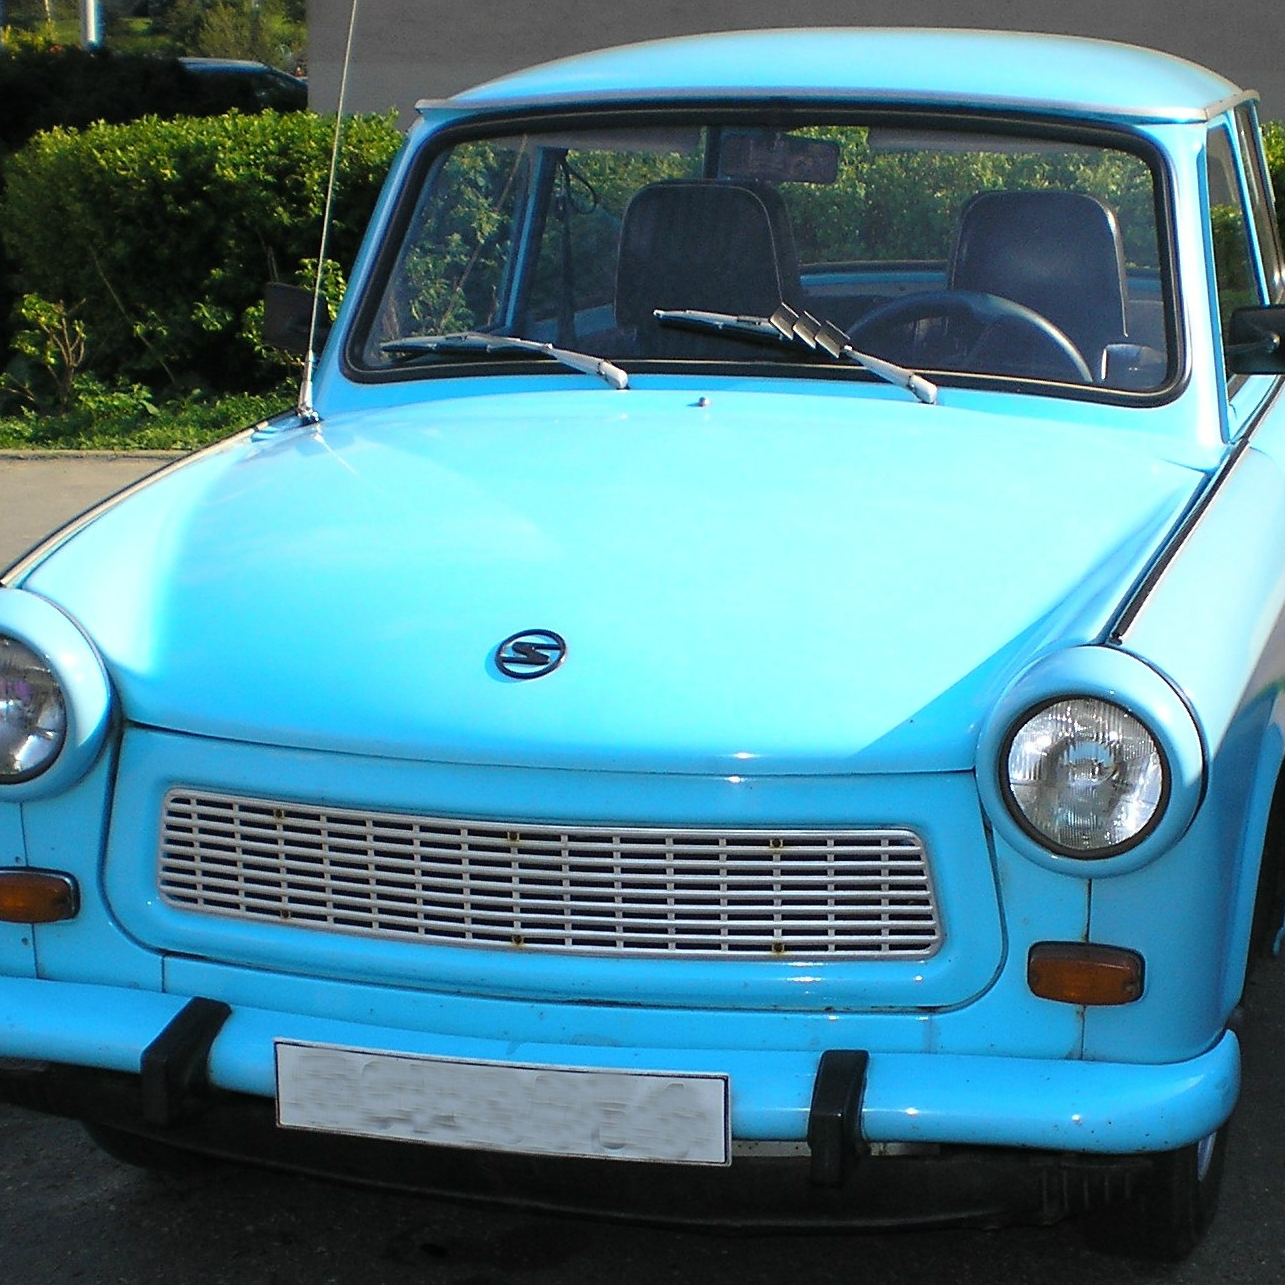 The Trabant has sentimental value for some Bulgarians